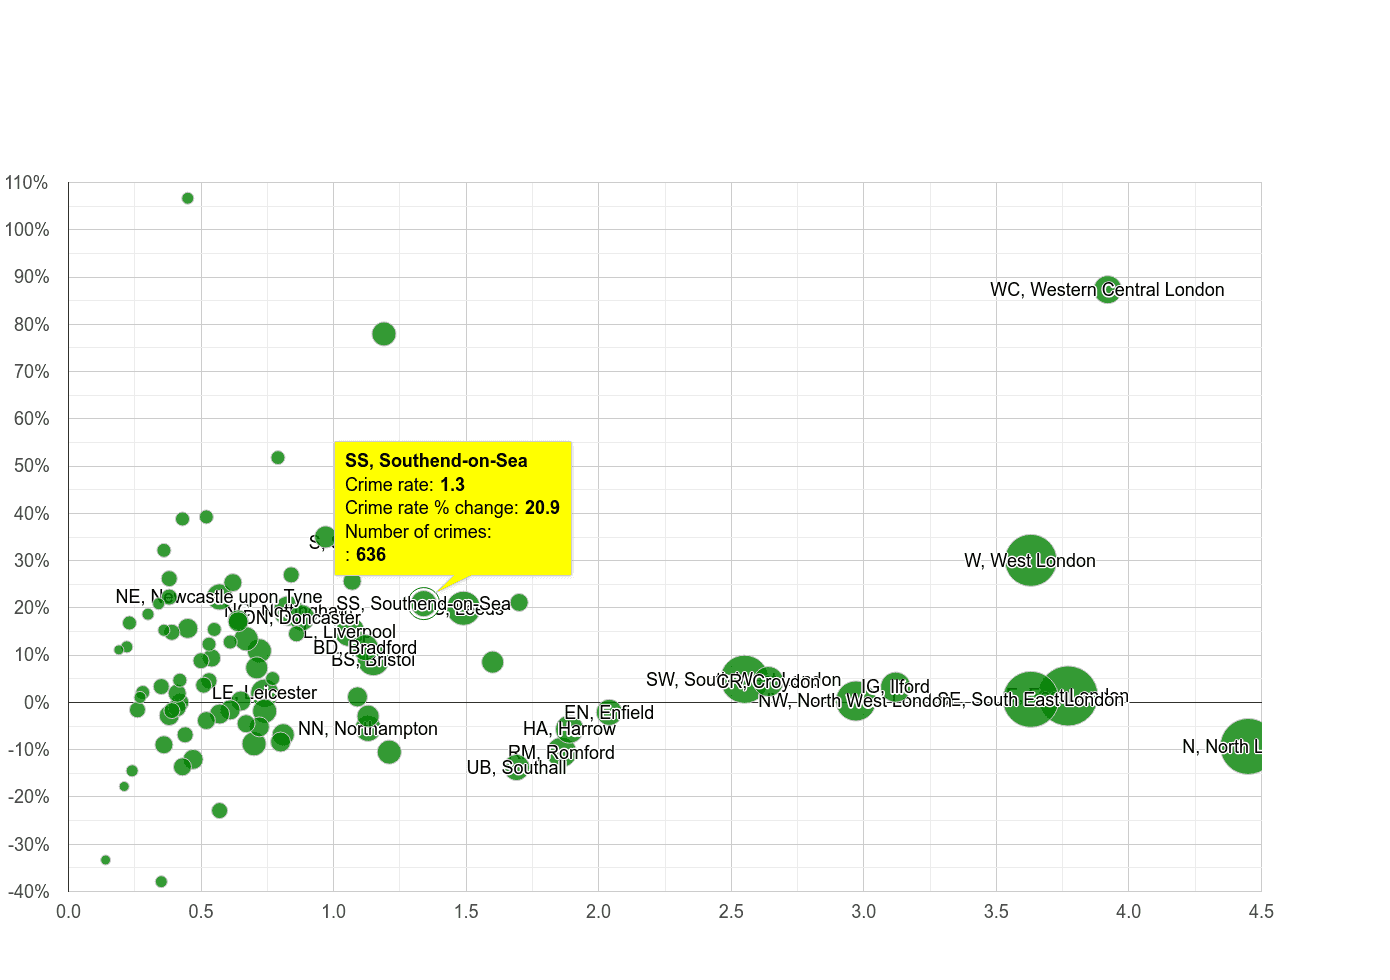 Southend on Sea robbery crime rate compared to other areas